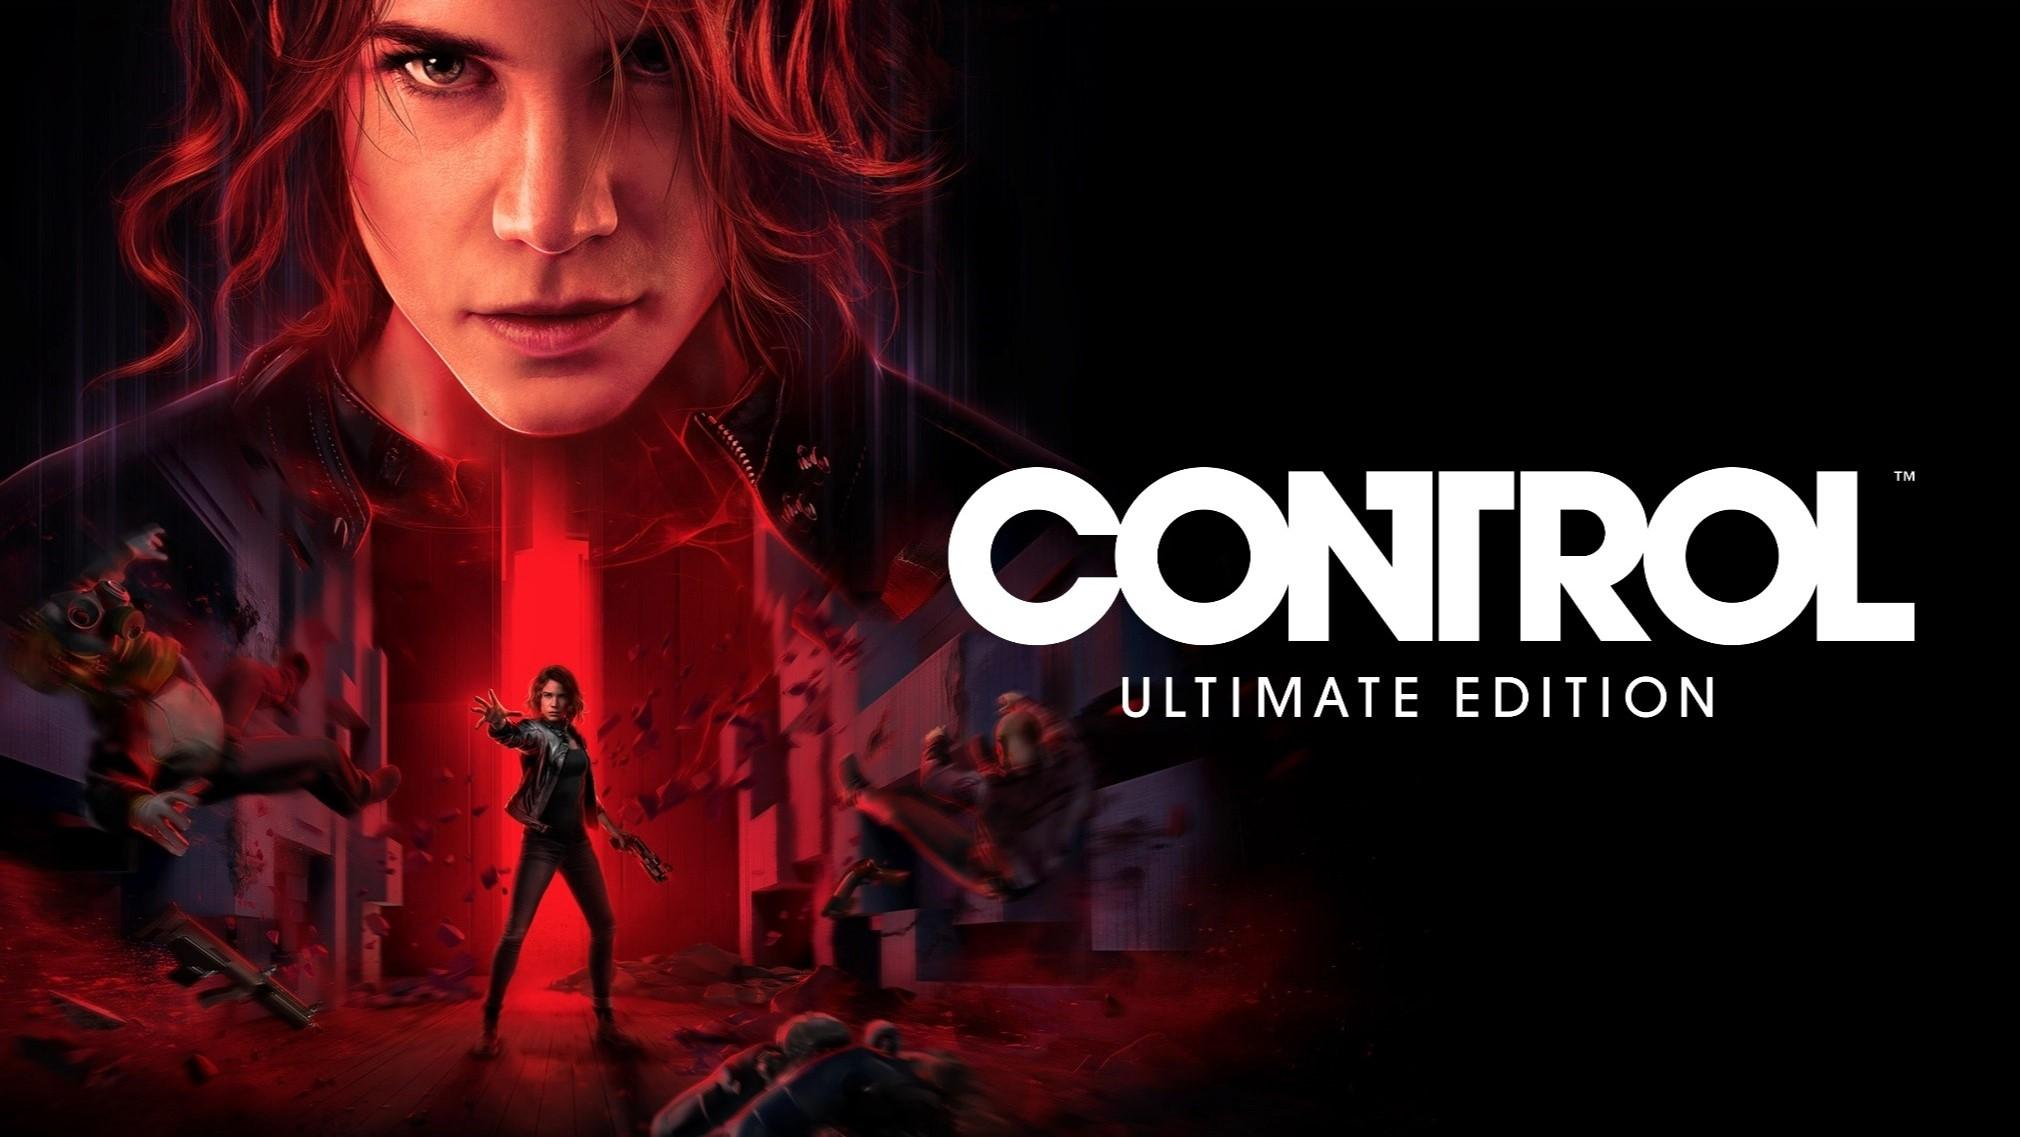 Control will only have free next-gen upgrades for Ultimate Edition customers